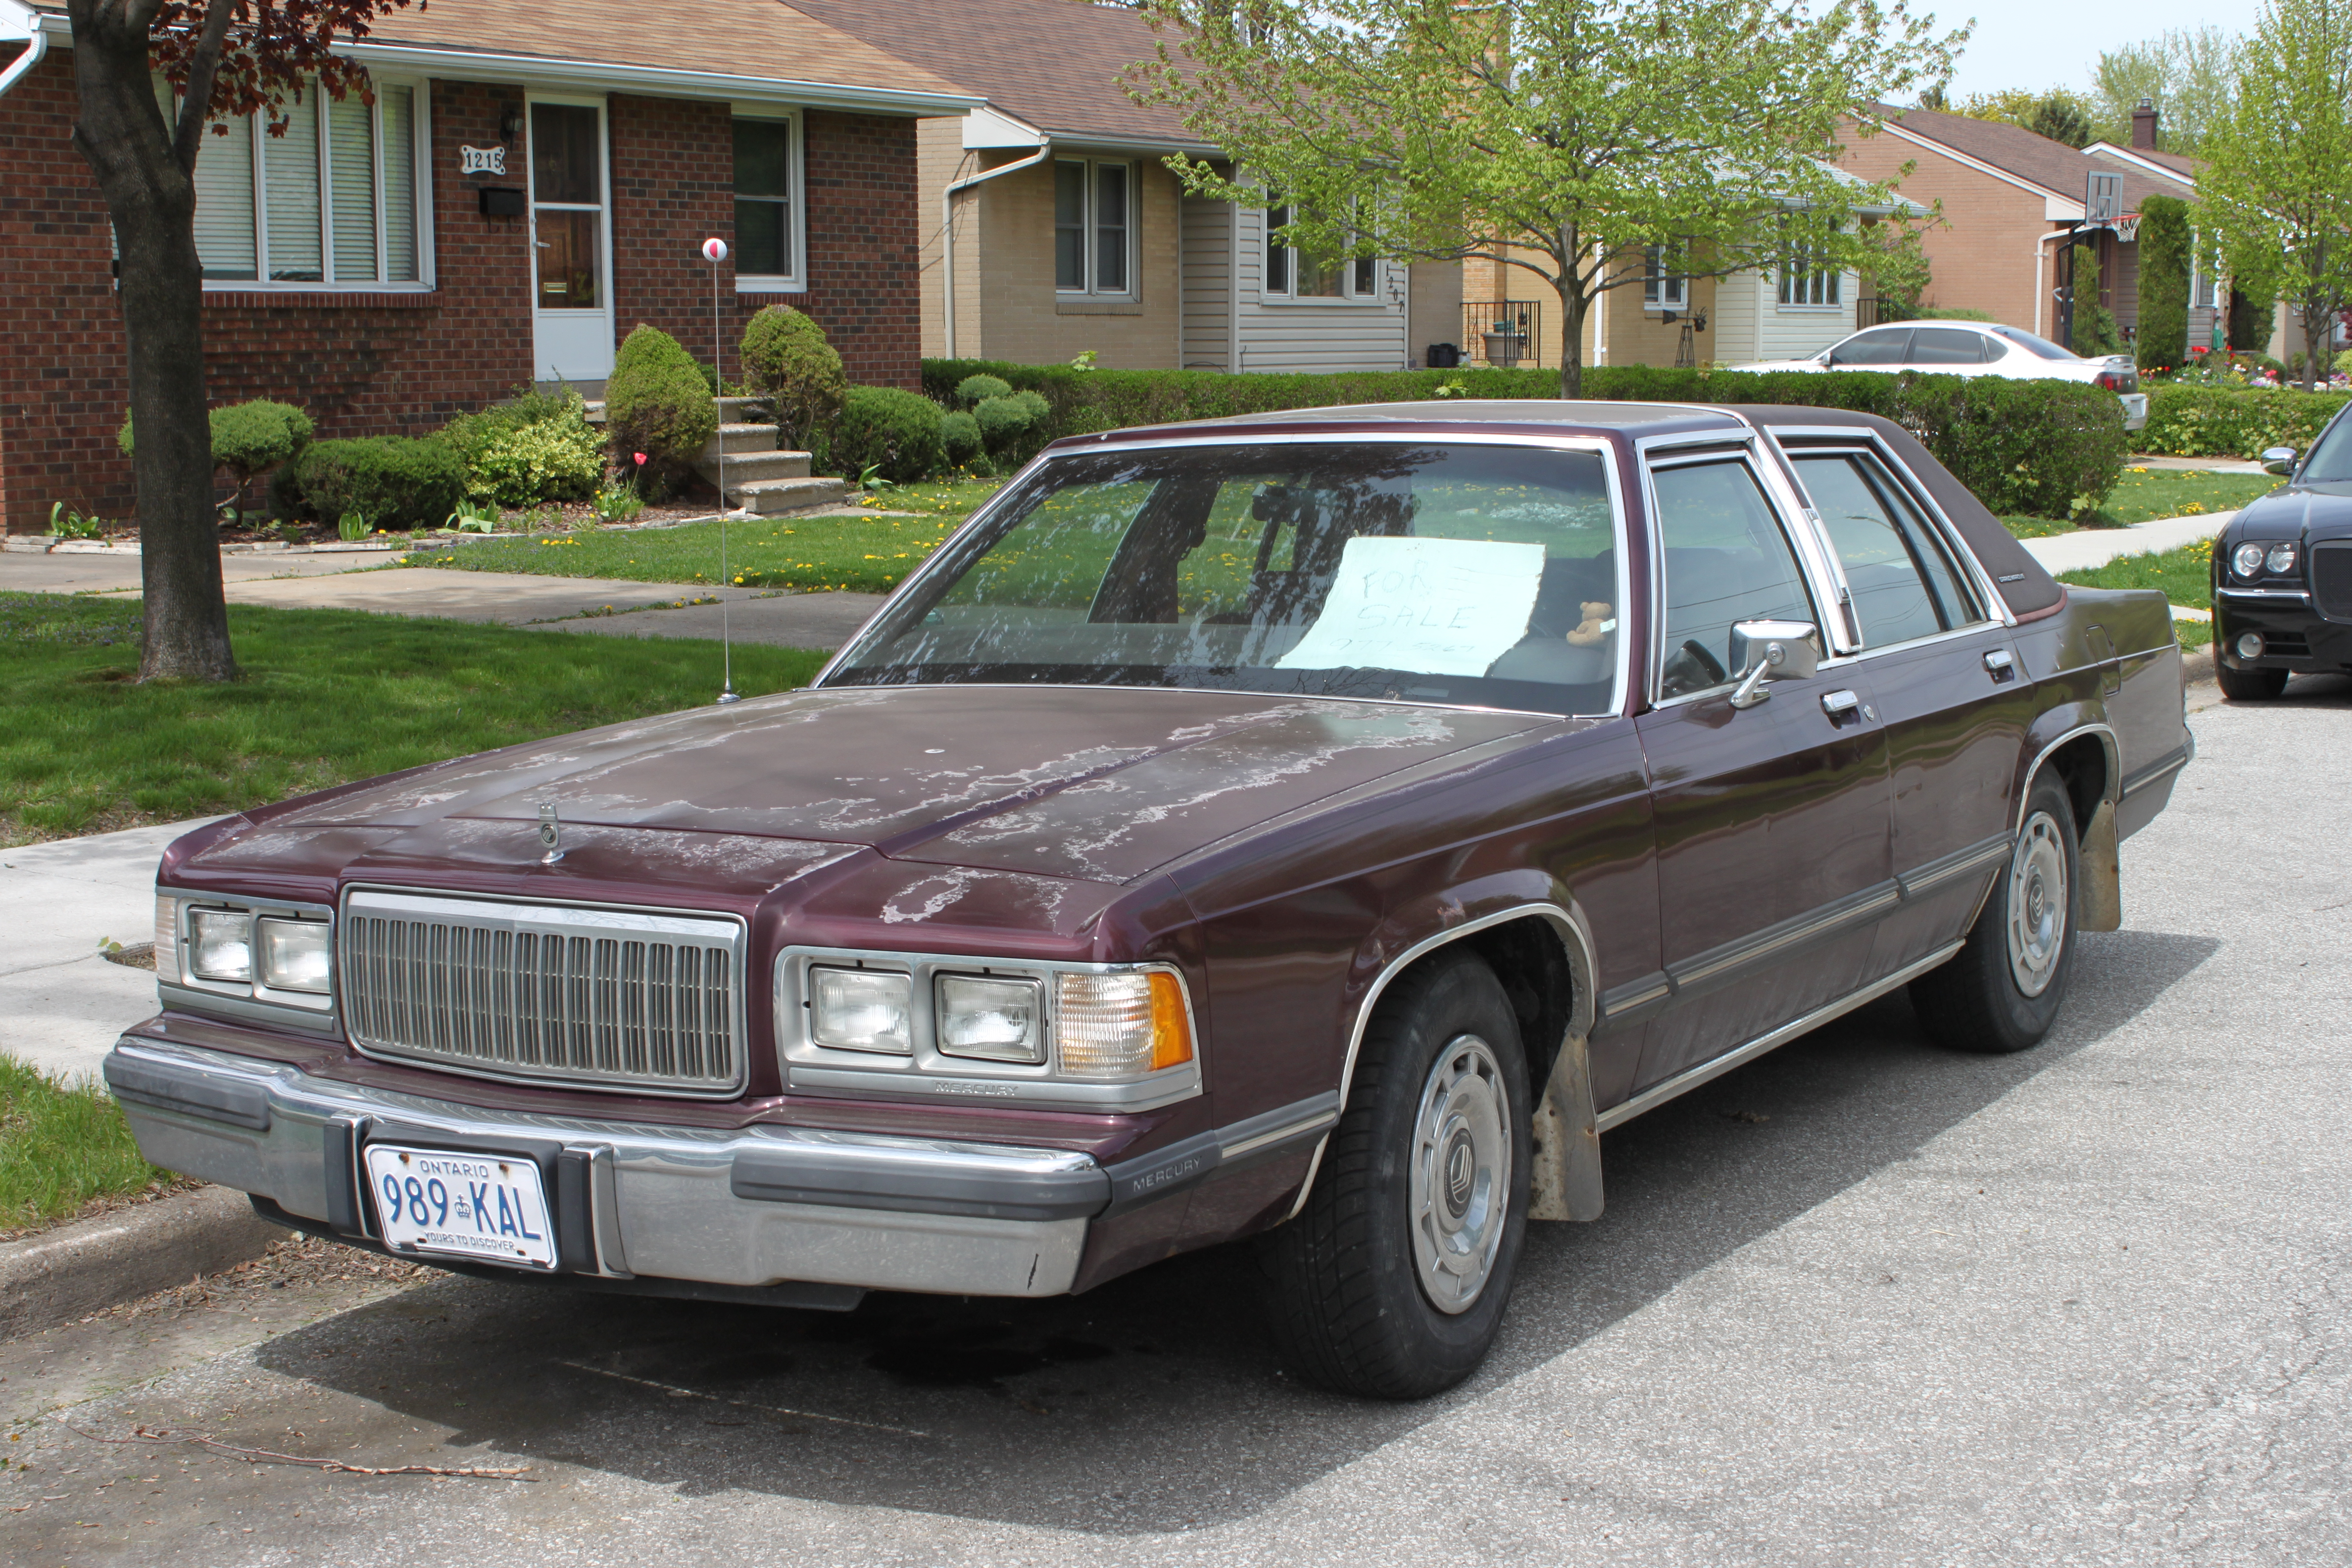 Curbside classic 1989 mercury grand marquis ls panthers run in the family